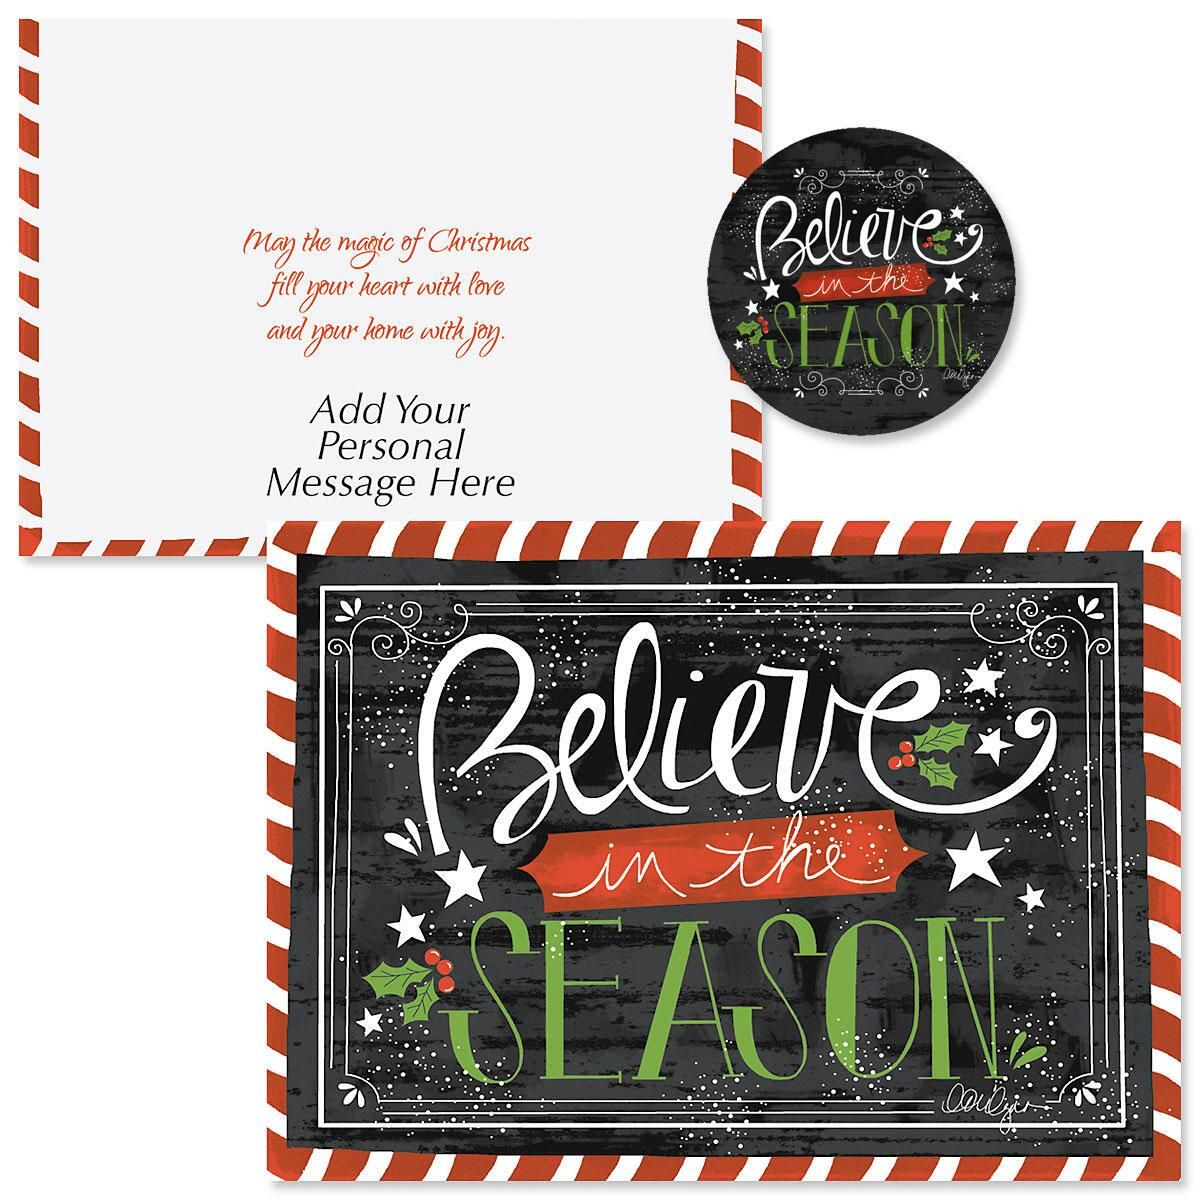 Believe In The Season  Christmas Cards